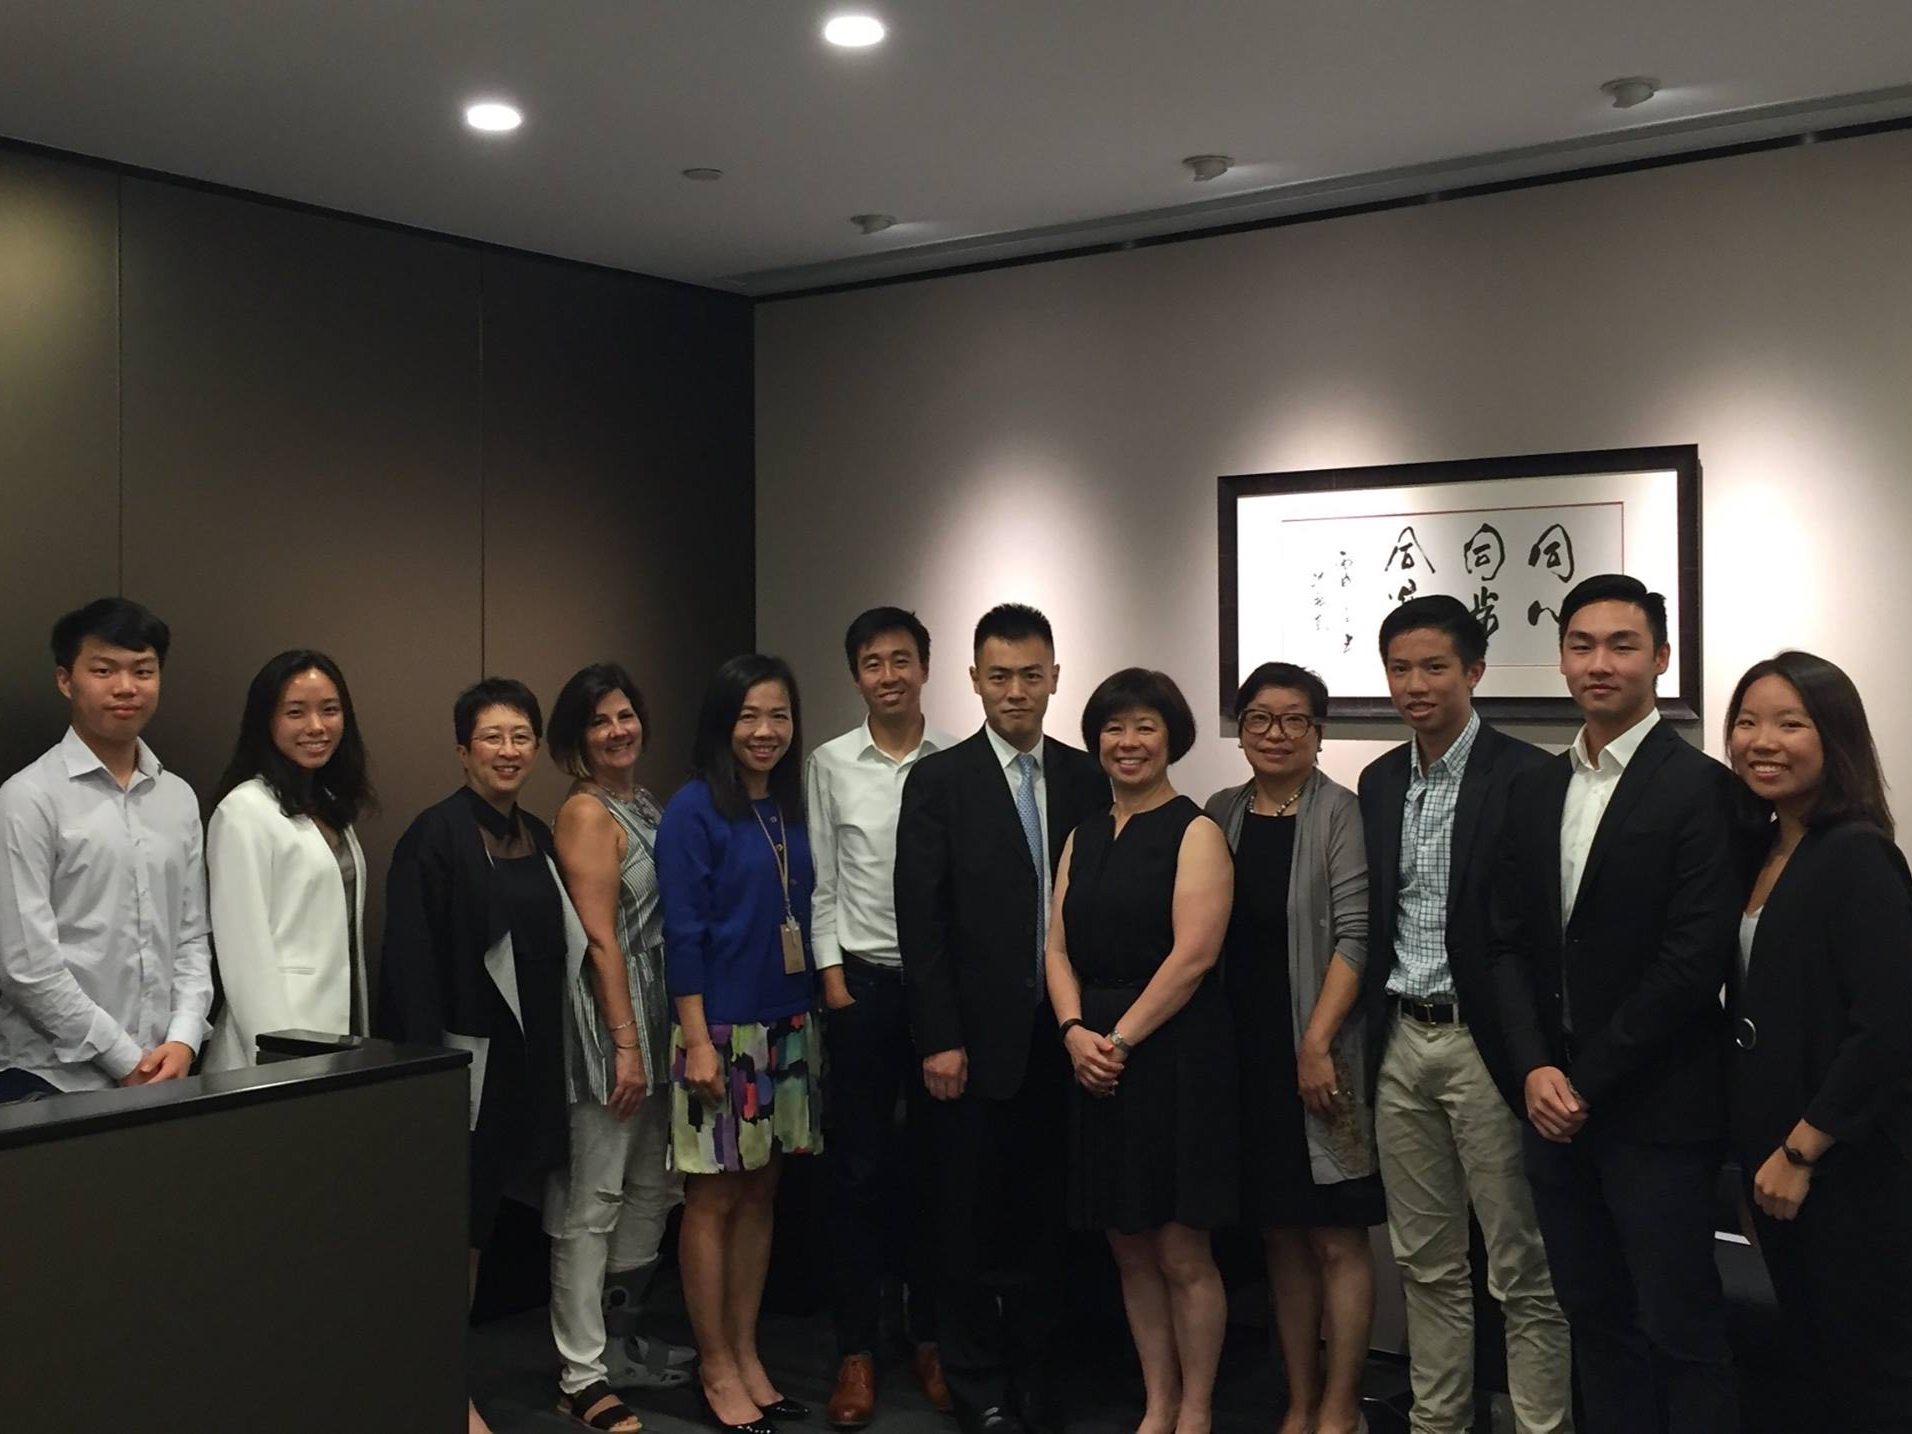 L-R: Chad Ho, Youth Director, Board & President's Office; Kerry Hsu, Senior Vice President, Operations; Peonie Wong, Executive Director; Abigail DeLessio, Director; Jacqueline Lam, Director; Gary Liu, Director; Ming Wai Lai, GBS JP, Chairman; Bonnie Ngan, Director; Anna Lo, Director; Ian Chu, Senior Vice President, Policy; Harriet Kwok, Senior Vice President, Communications